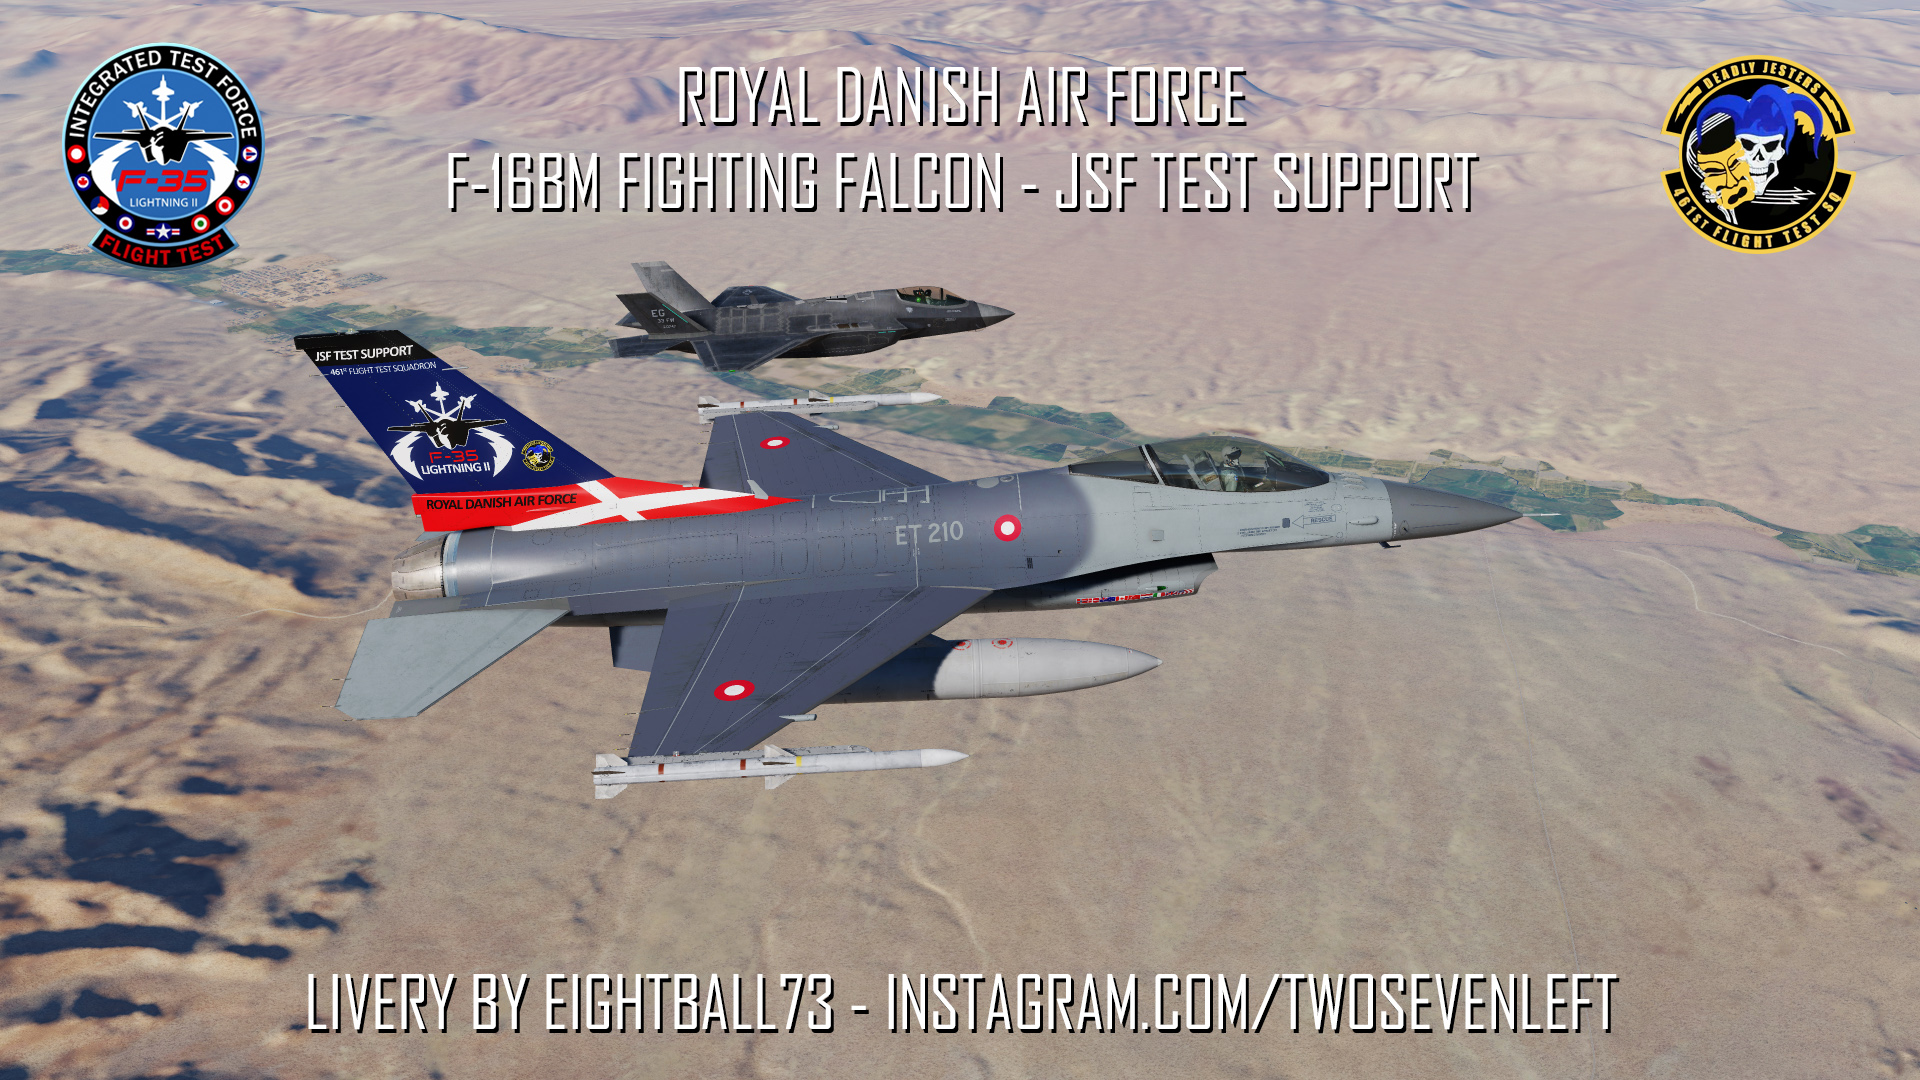 RDAF F-16BM Fighting Falcon ET 210 JSF Test Support